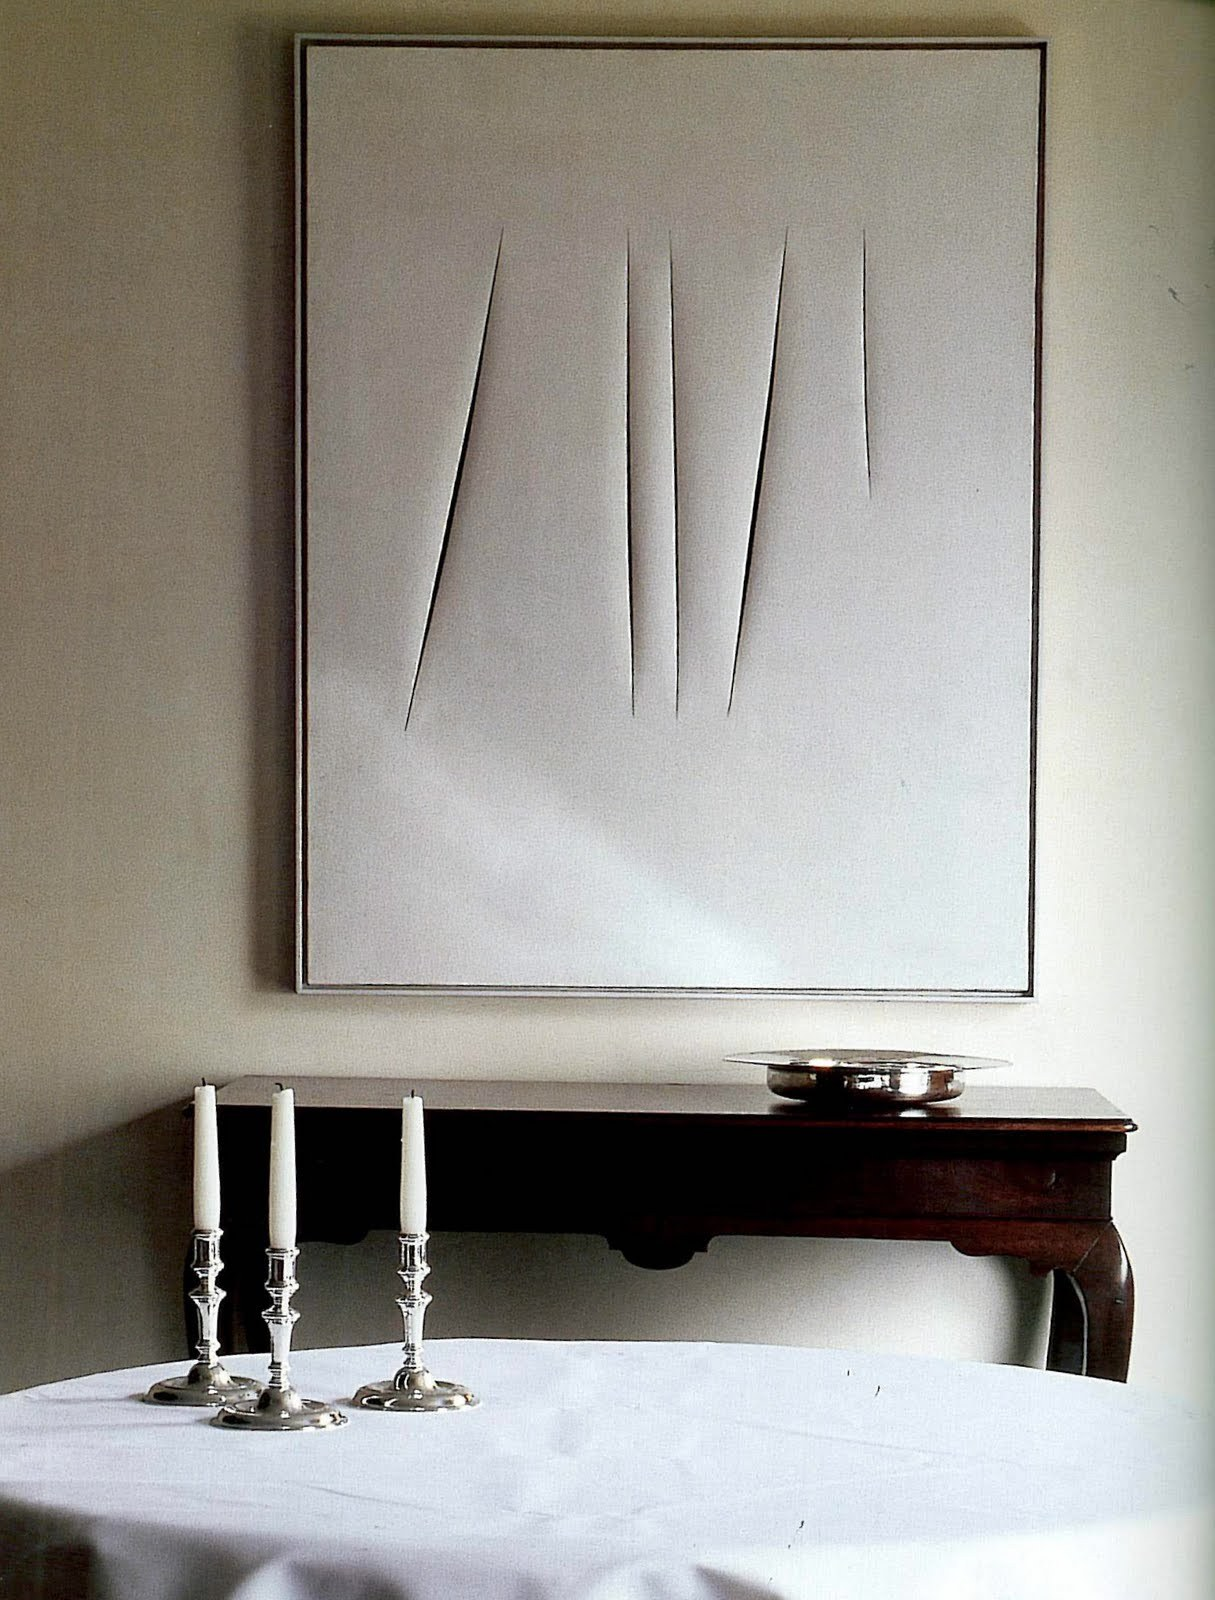 Interior design by Axel Vervoordt, with work of Lucio Fontana on display.